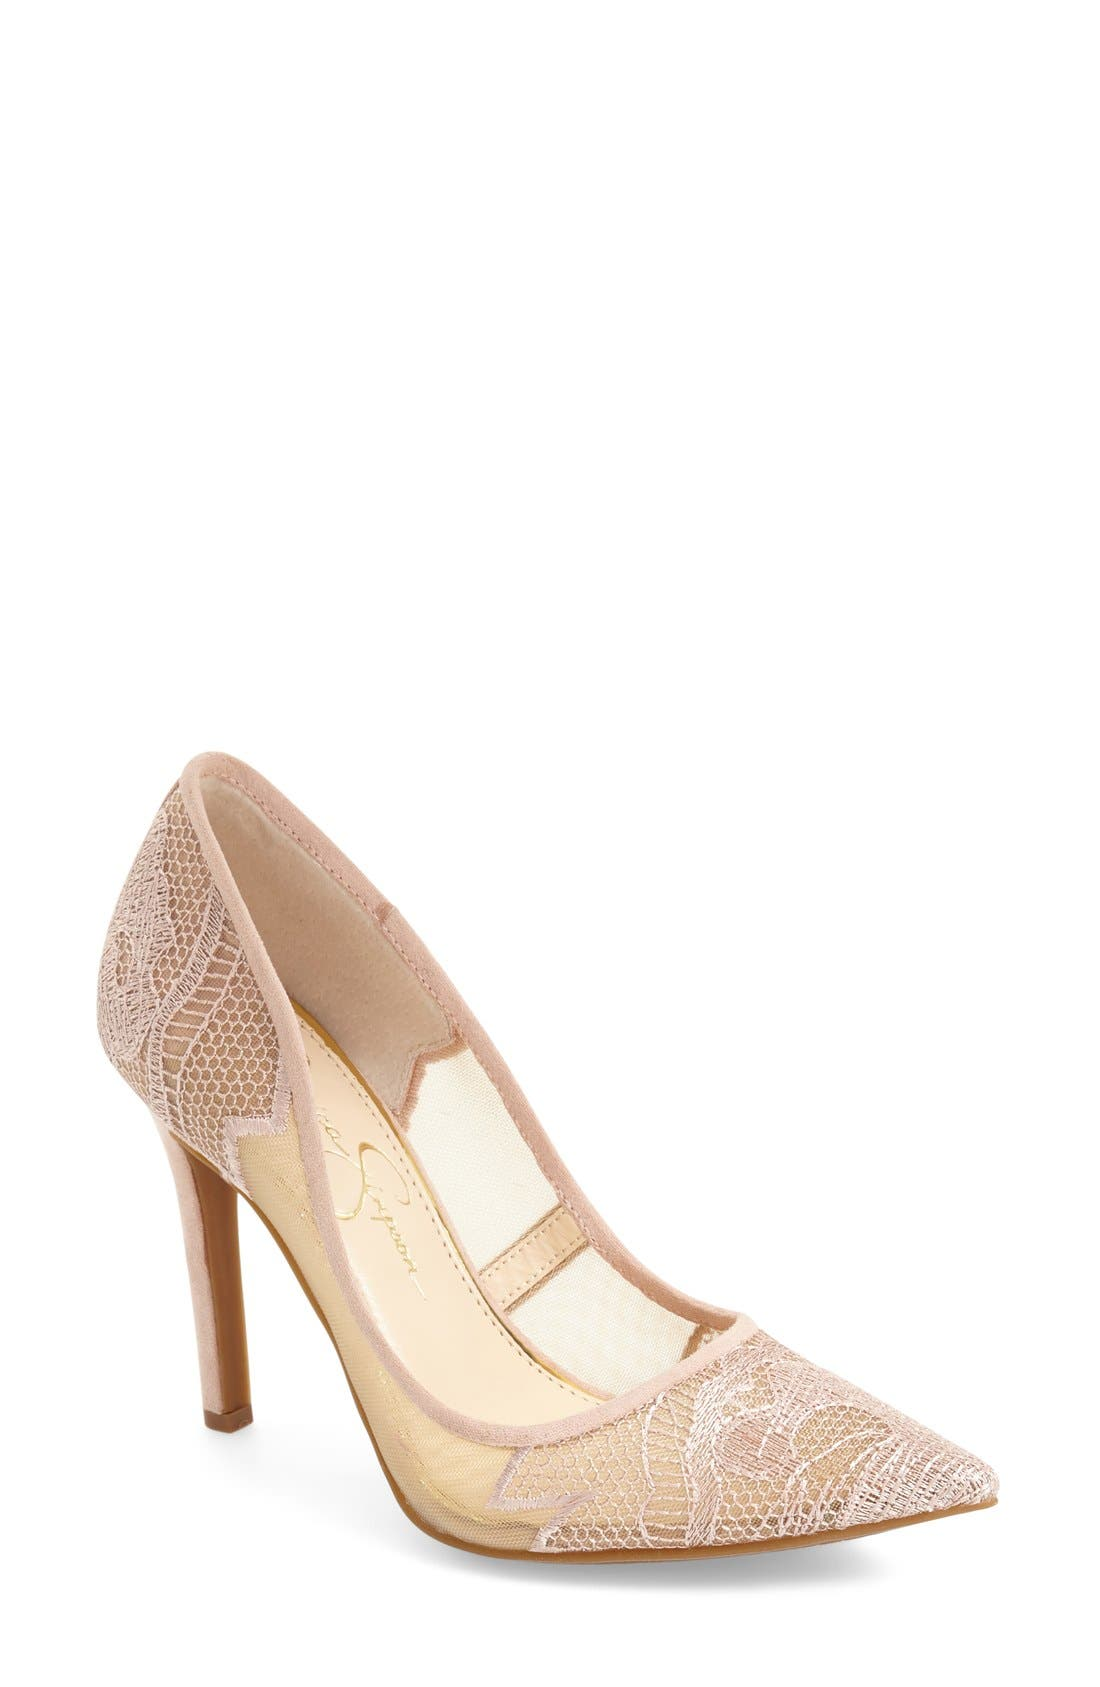 'Camba' Pointy Toe Pump,                             Main thumbnail 1, color,                             260